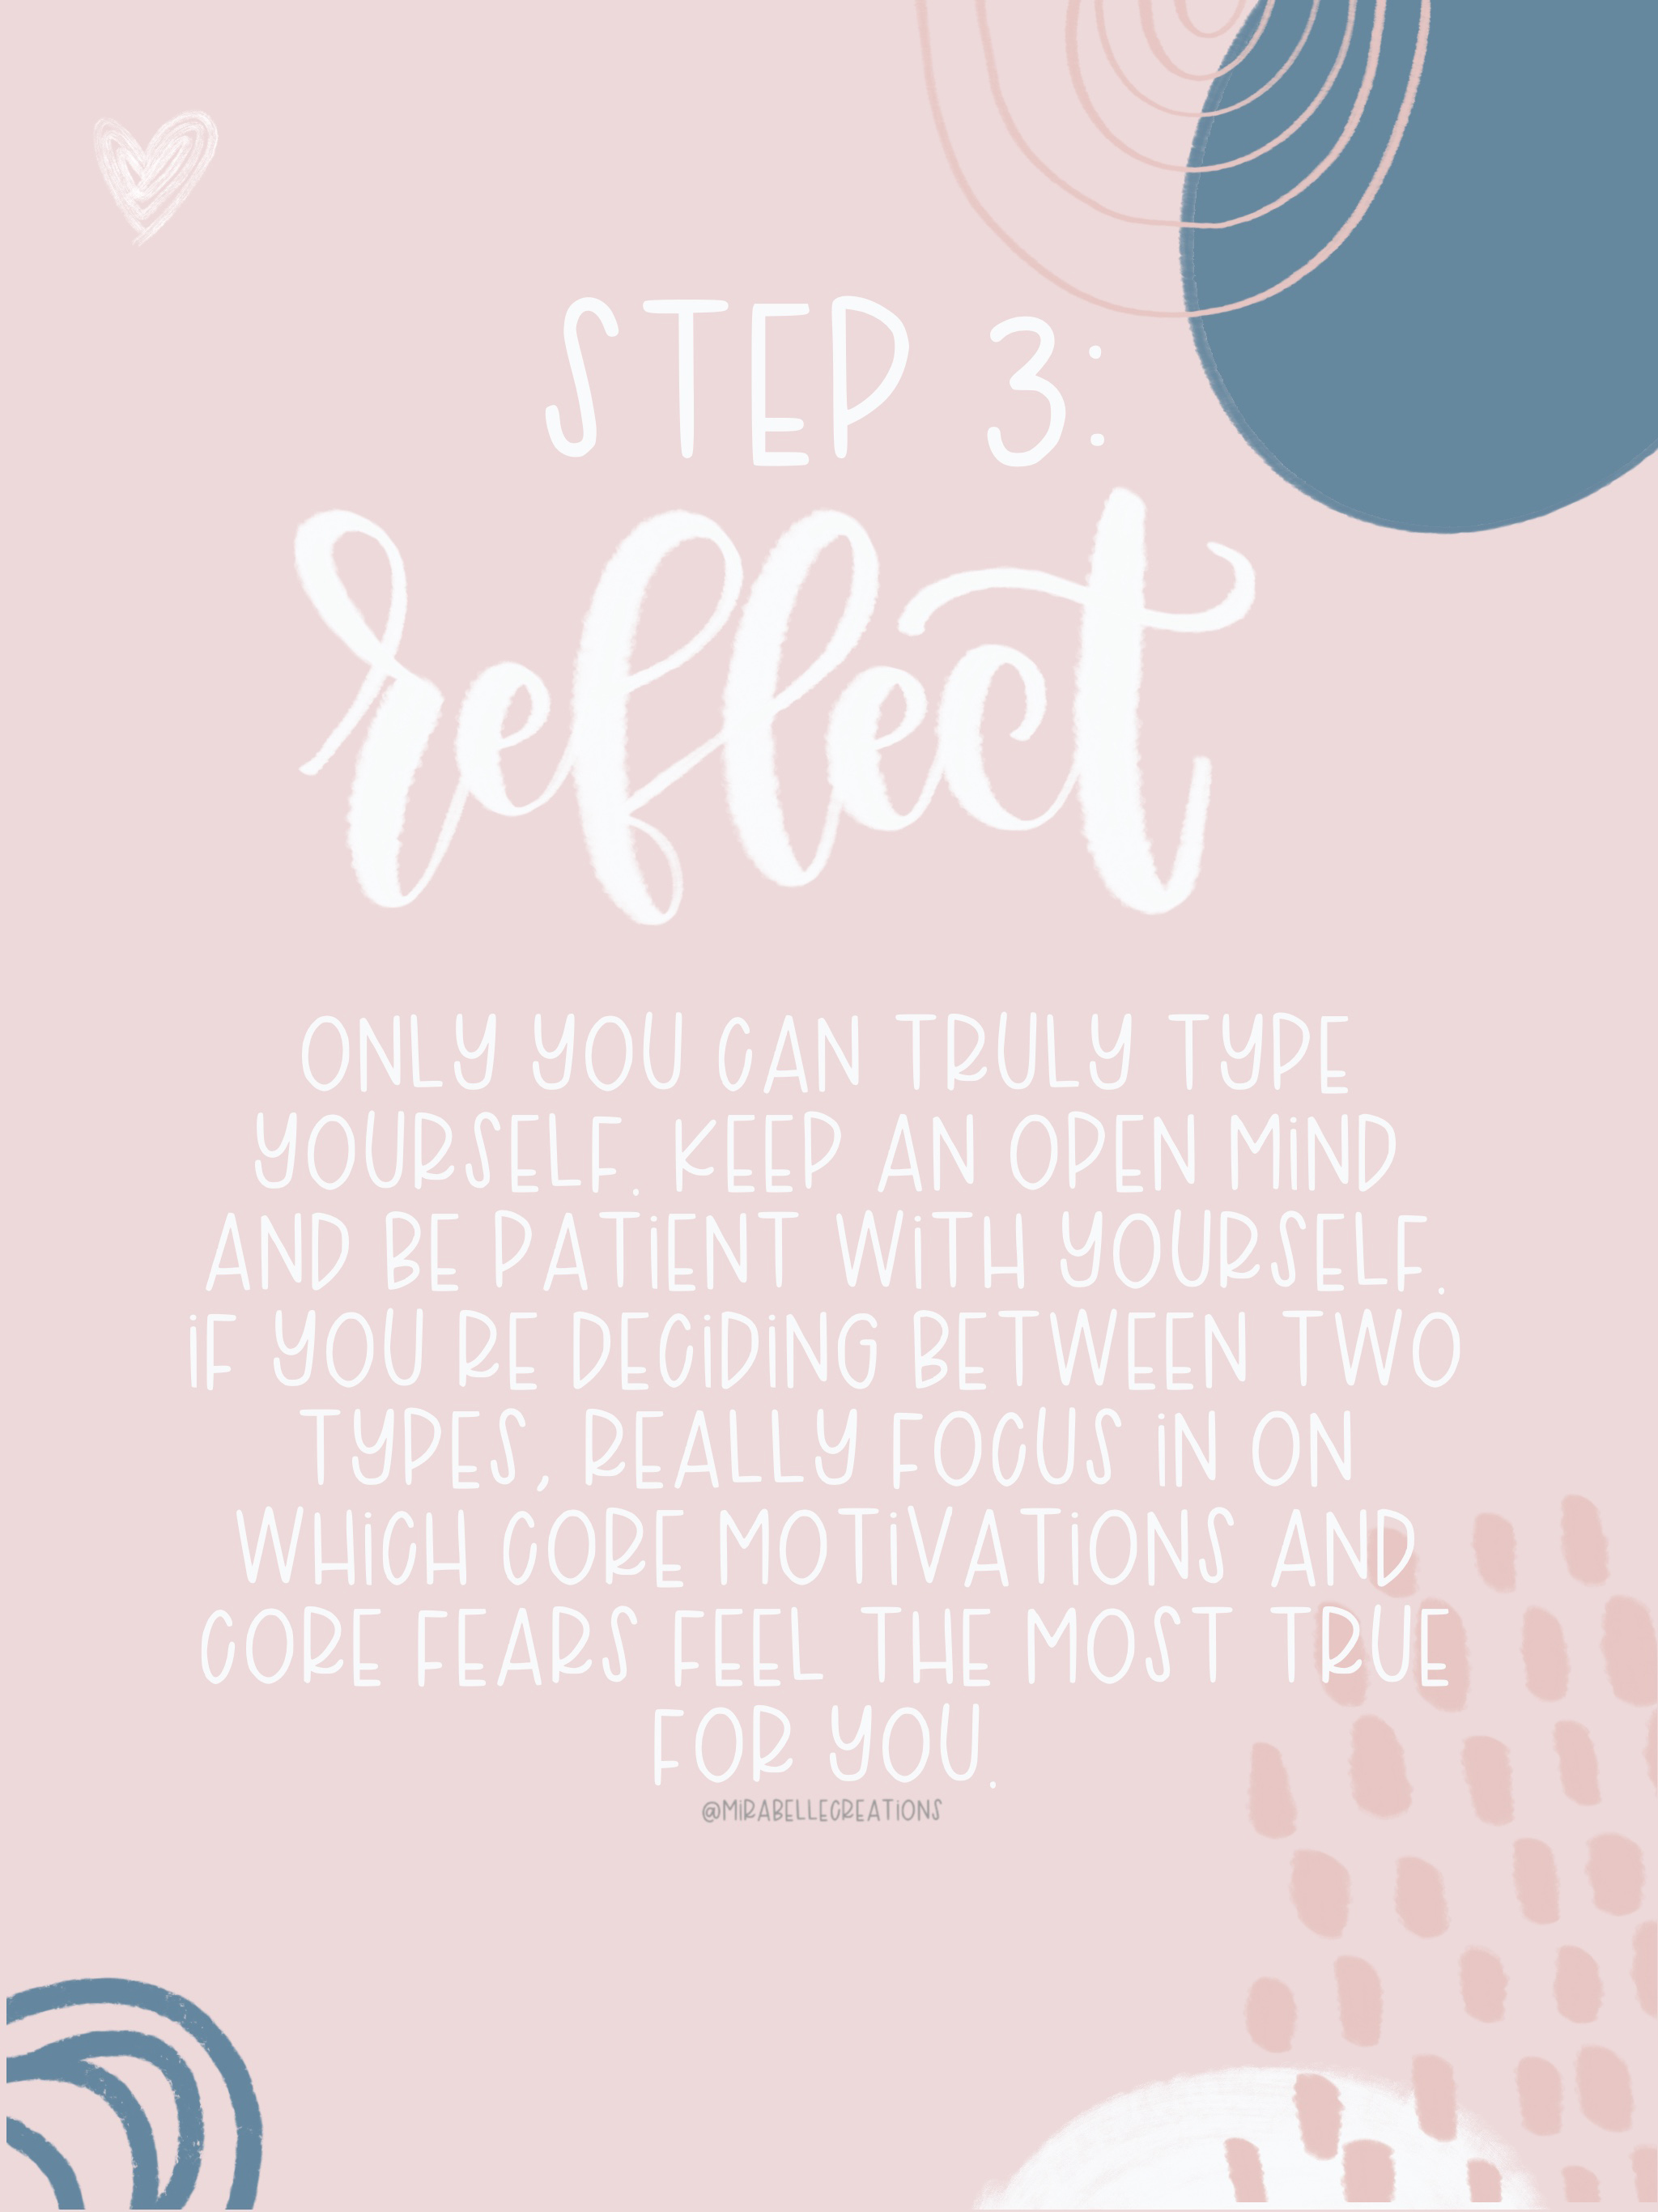 Determine Your Enneagram Type - Step 3: Reflect